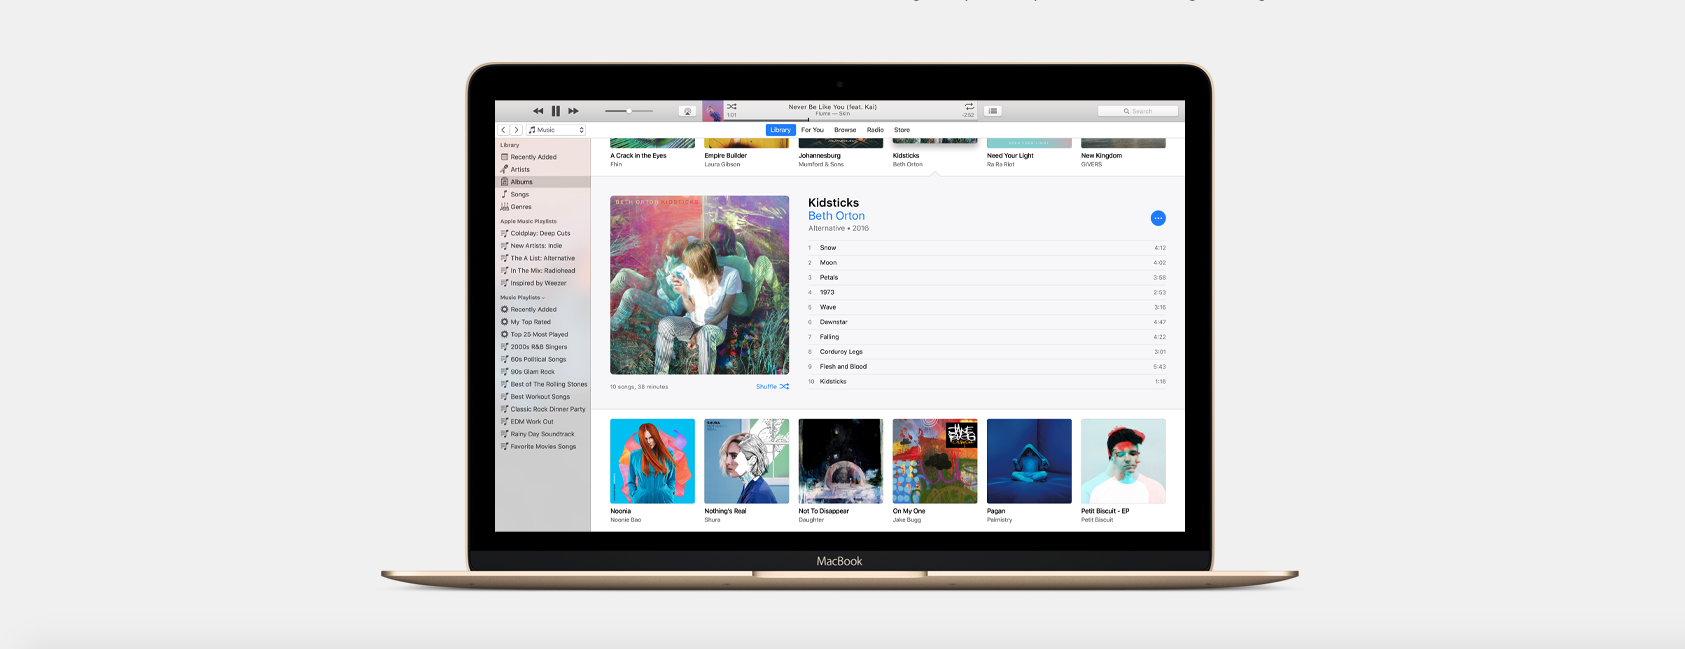 how to download mavericks without app store